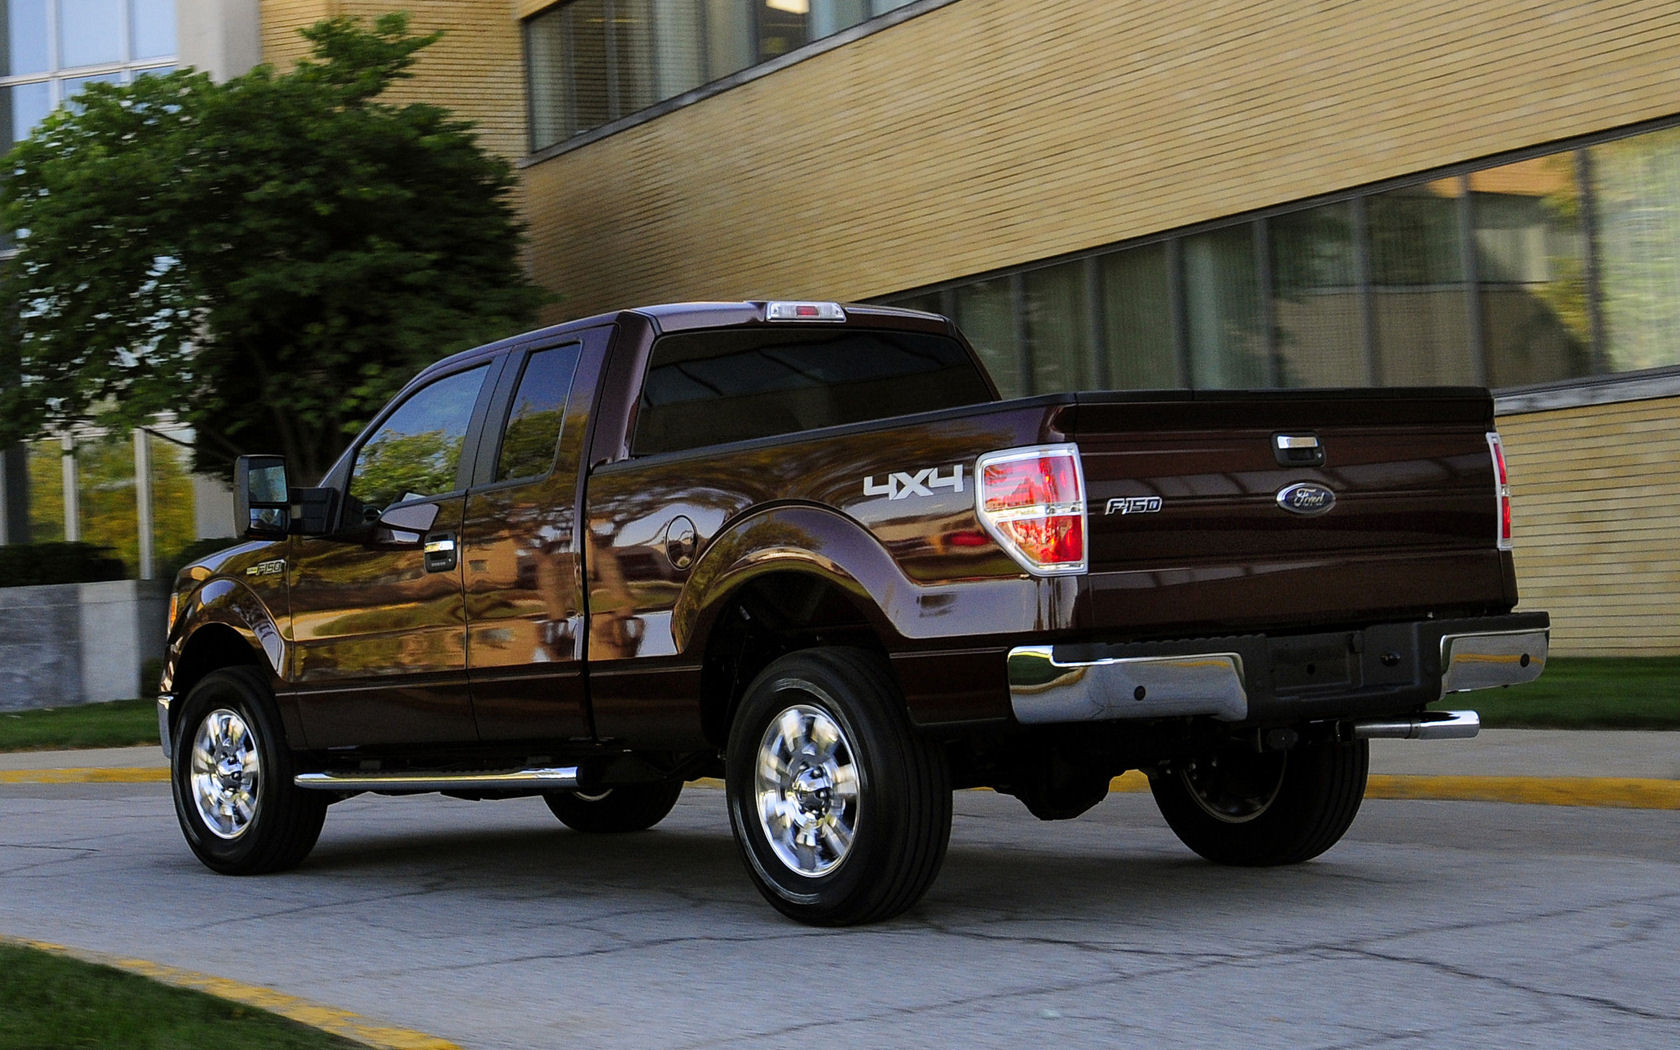 Ford > Ford F150 > Ford F150 Desktop Wallpapers > Widescreen Wallpaper